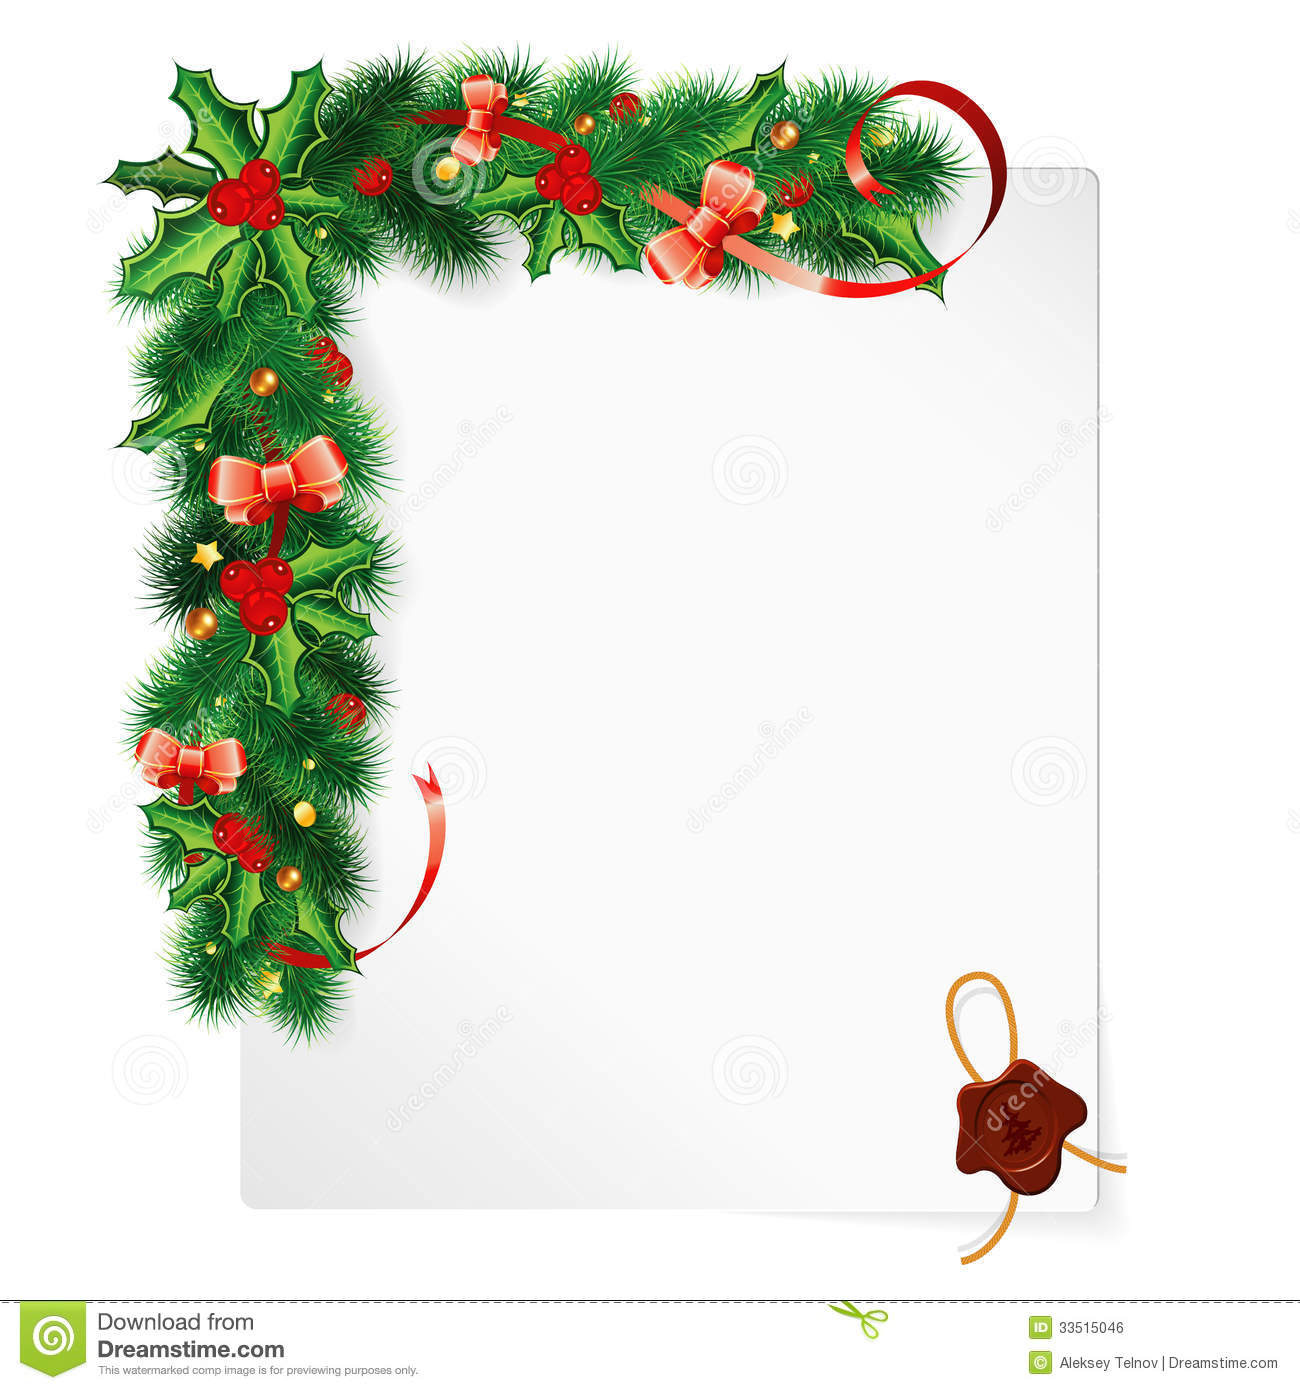 weihnachtsrahmen vektor abbildung illustration von holly berry clip art free black while holly berry clipart image